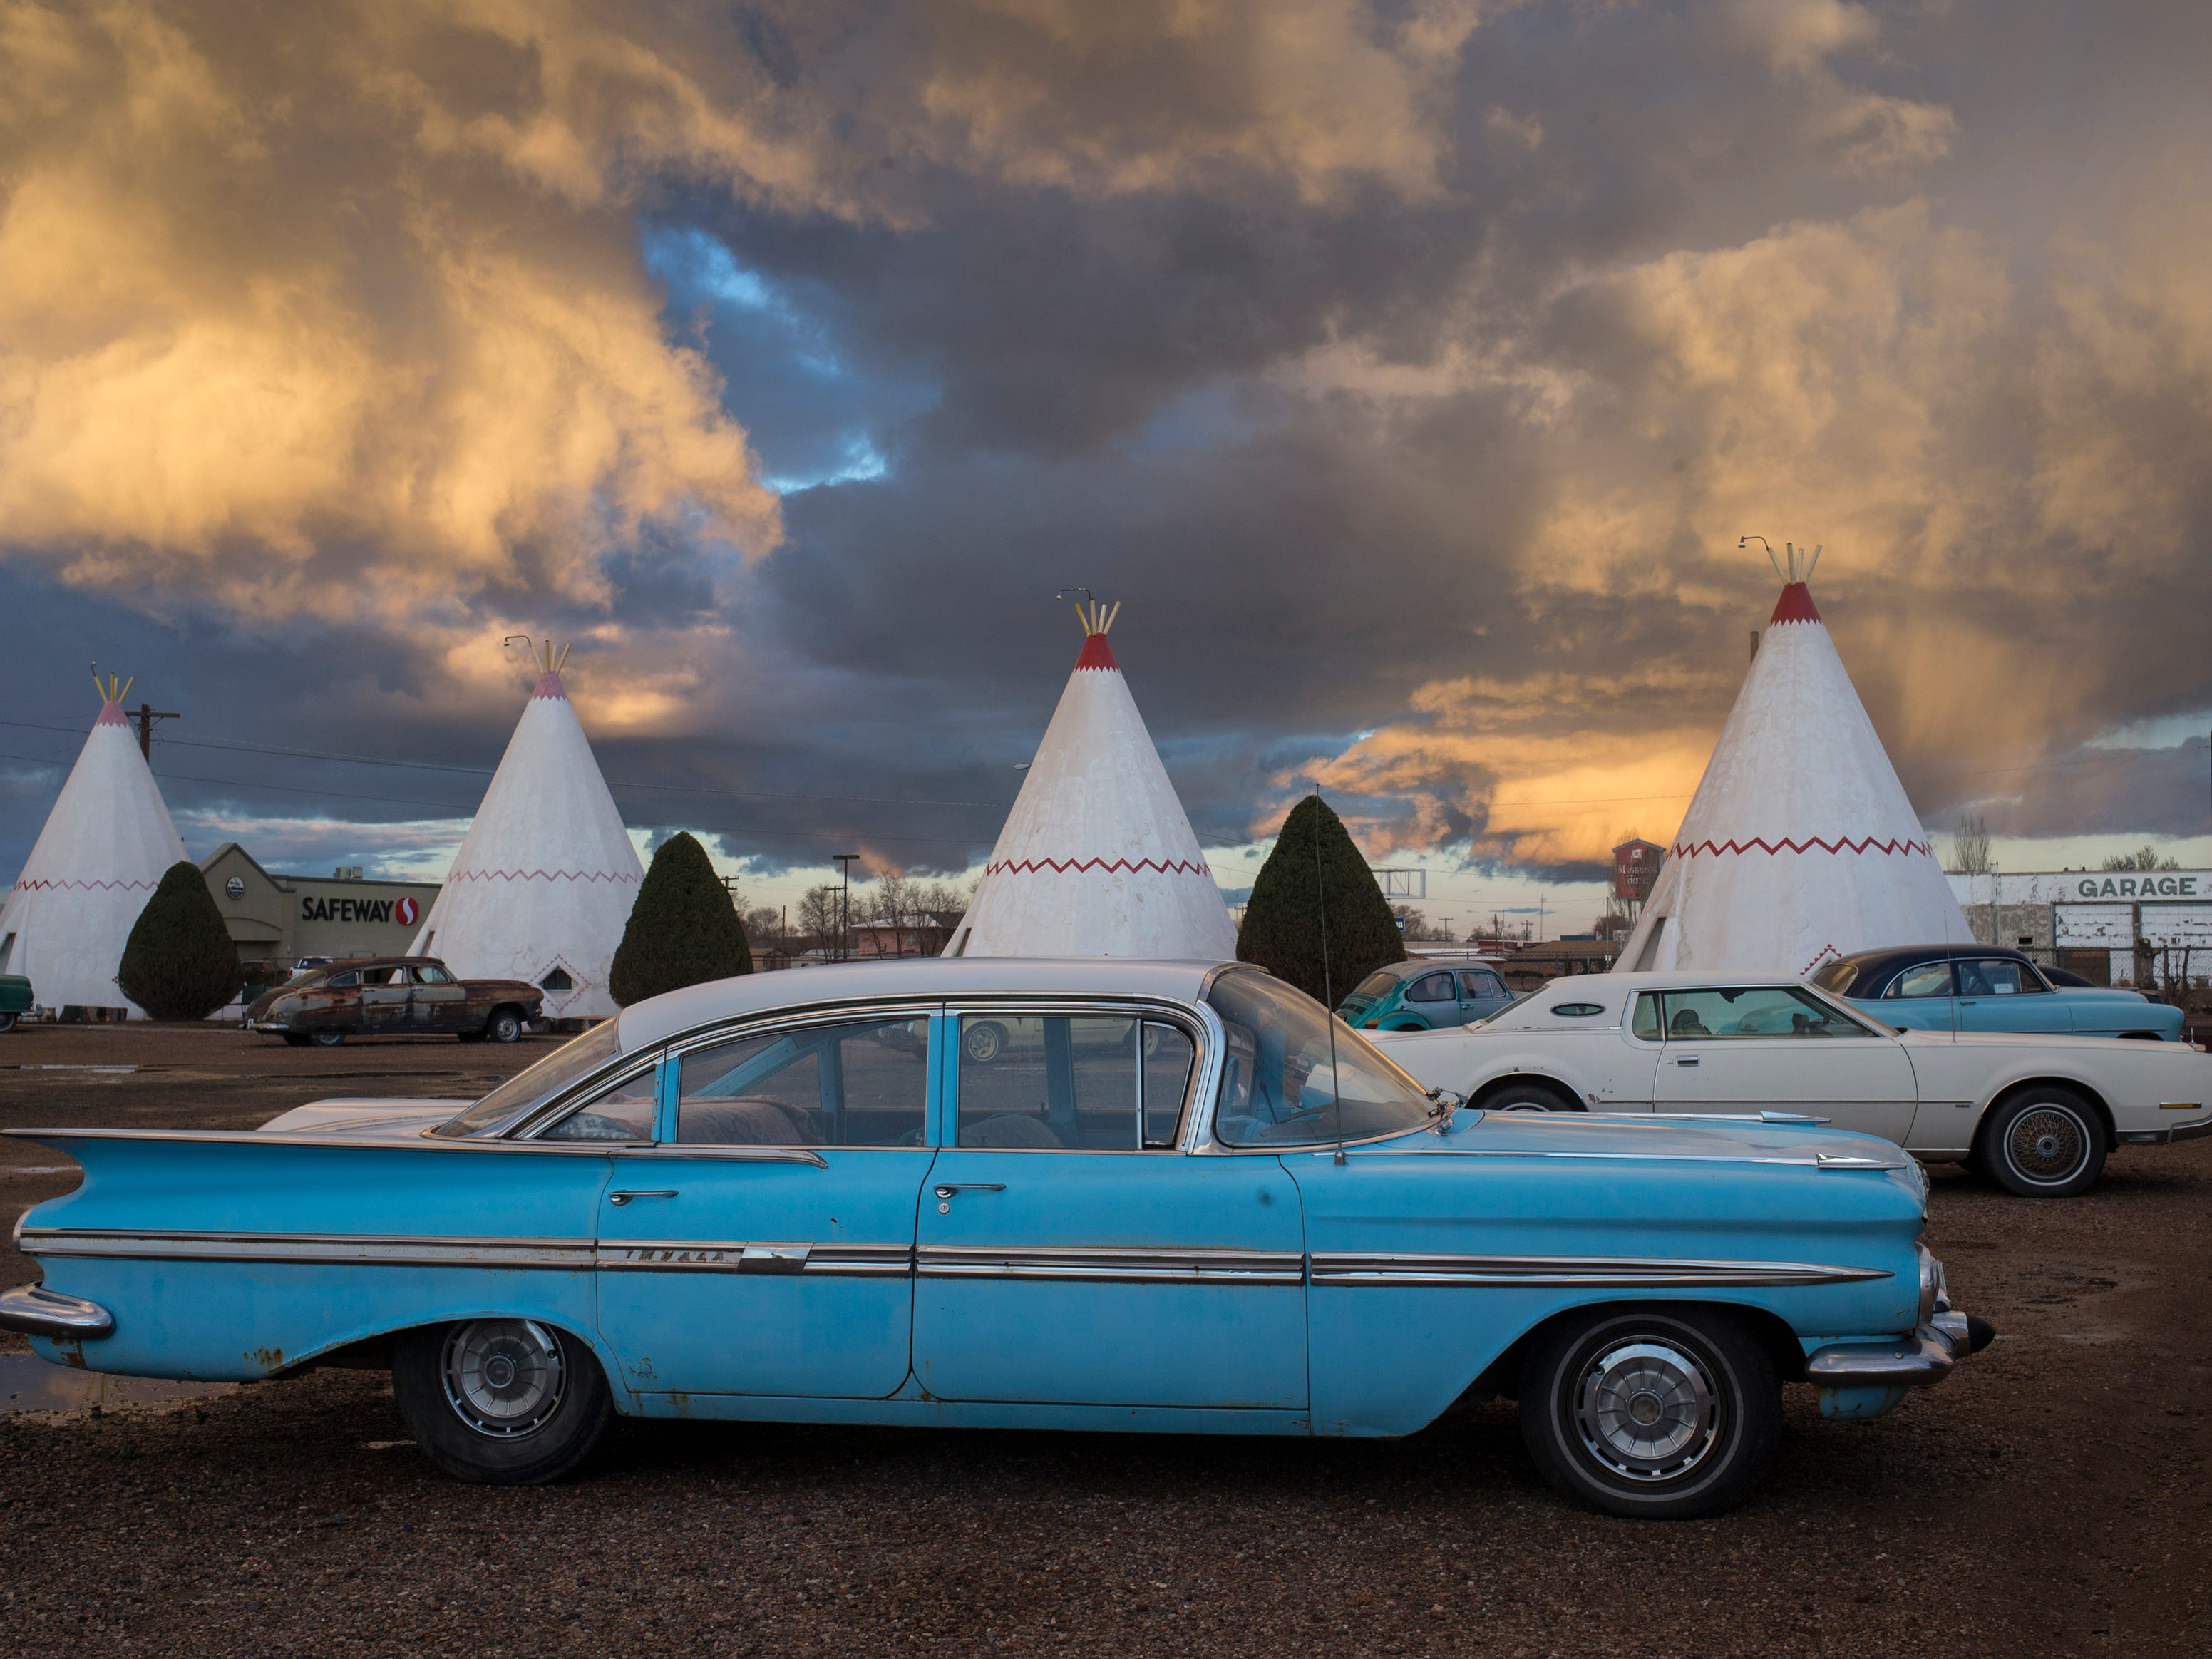 The sun sets on the Wigwam Motel, in Holbrook, Arizona. Wigwam Village #6 opened in 1950 as a motel, gas station and roadside attraction, a Route 66 trifecta.